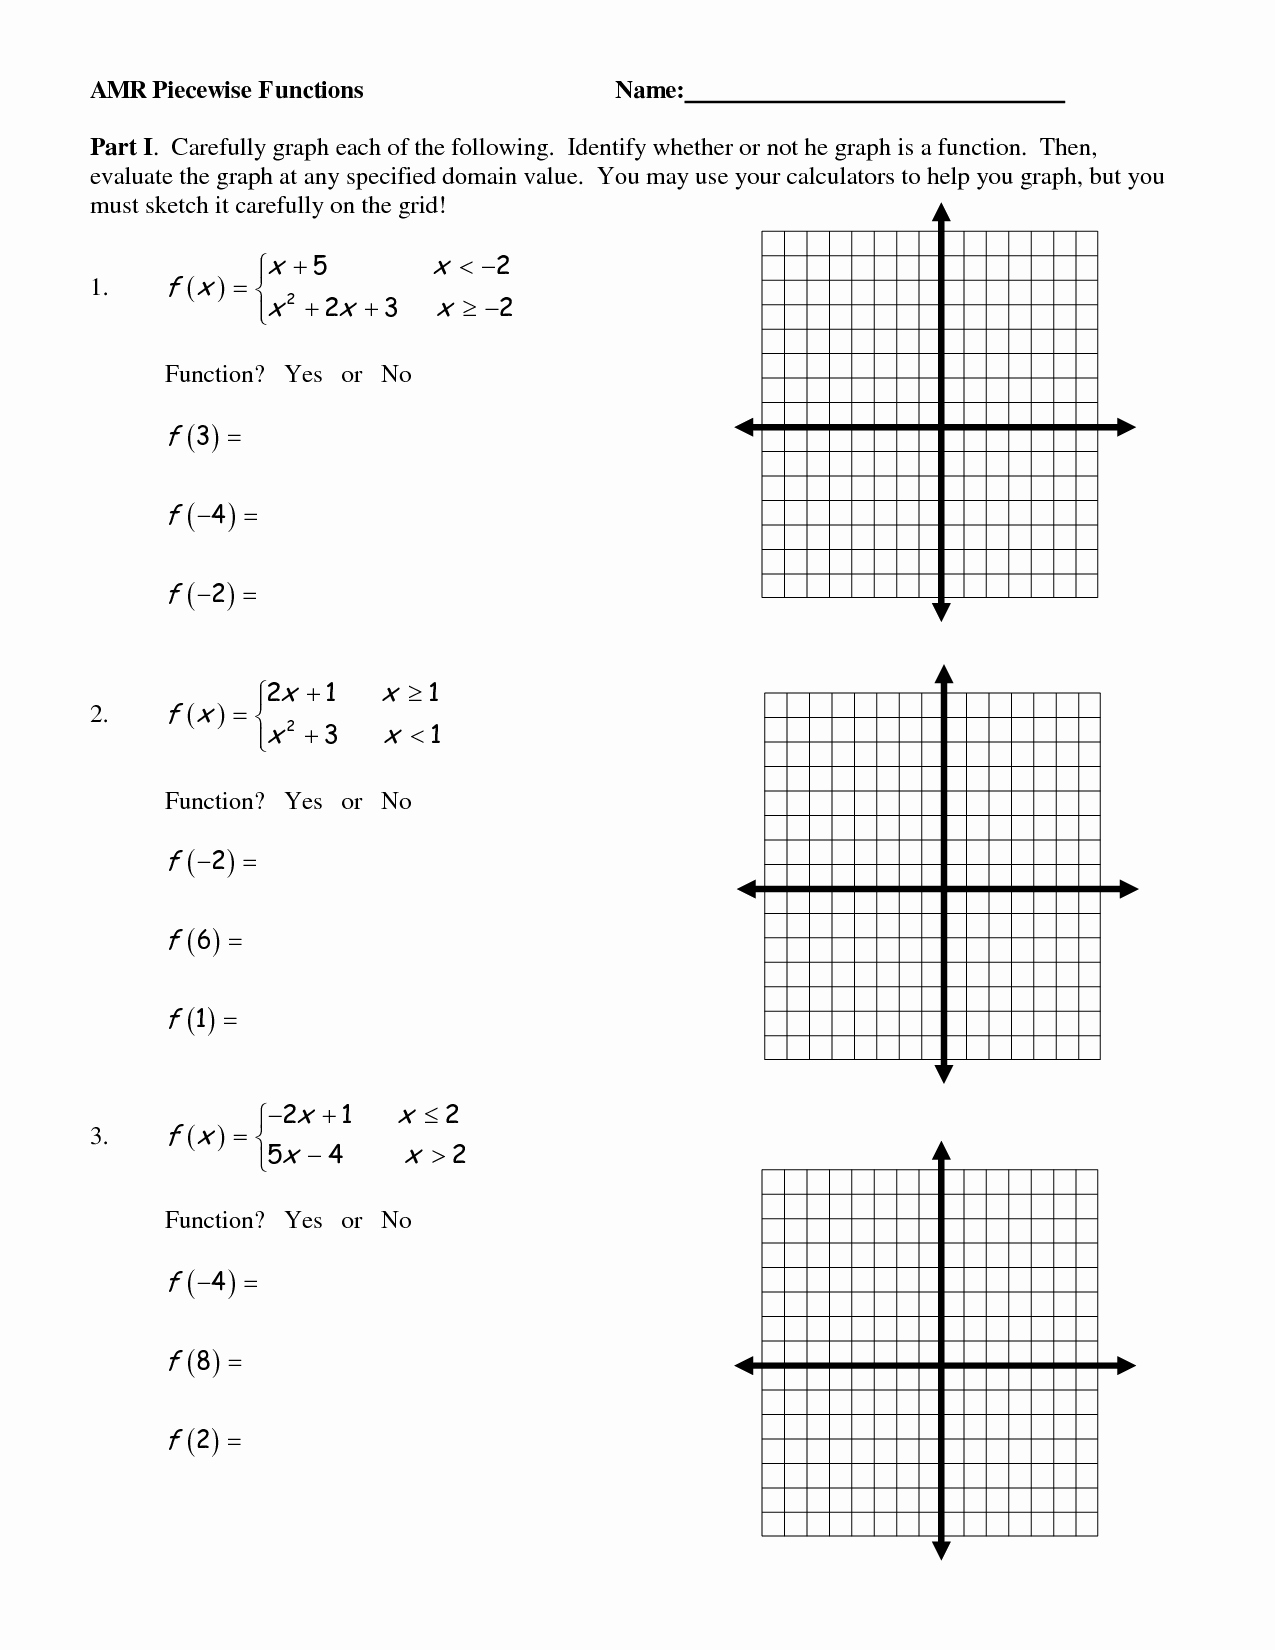 Worksheet Piecewise Functions Answer Key Inspirational 17 Best Of Graph Functions Worksheets Algebra